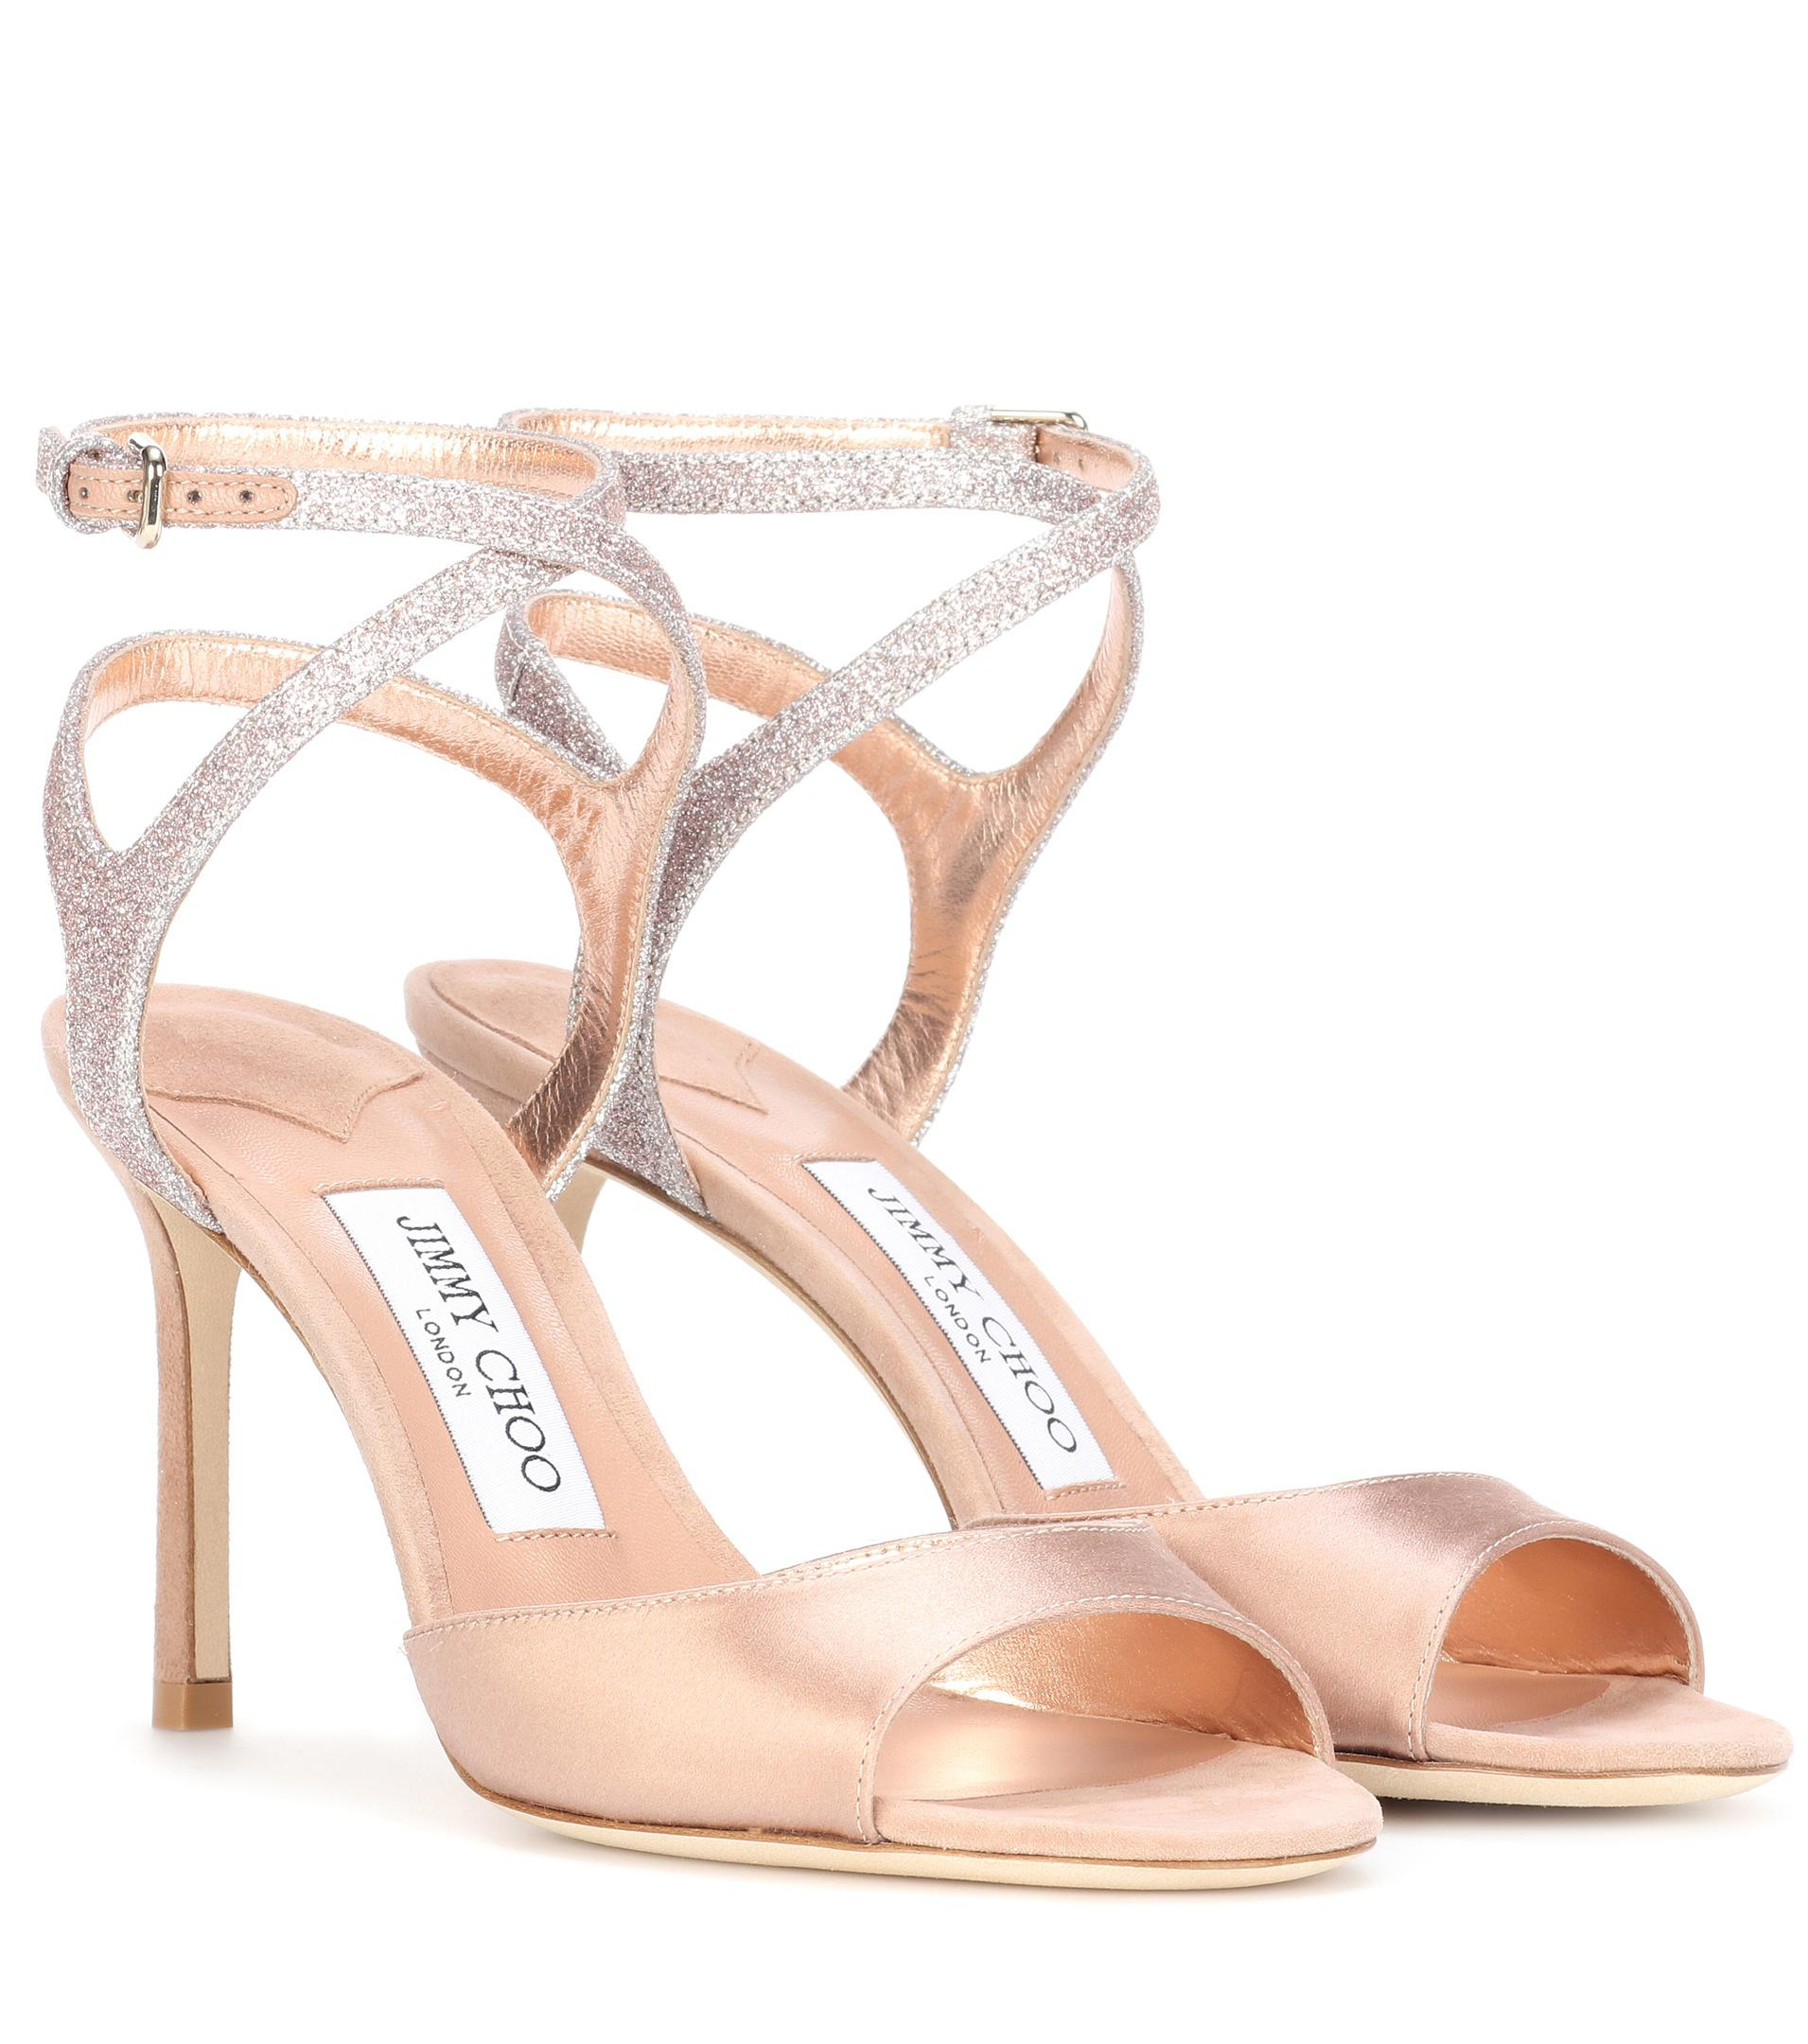 Lyst - Jimmy Choo Helen 85 Satin And Glitter Sandals in Pink 3599eb51b85